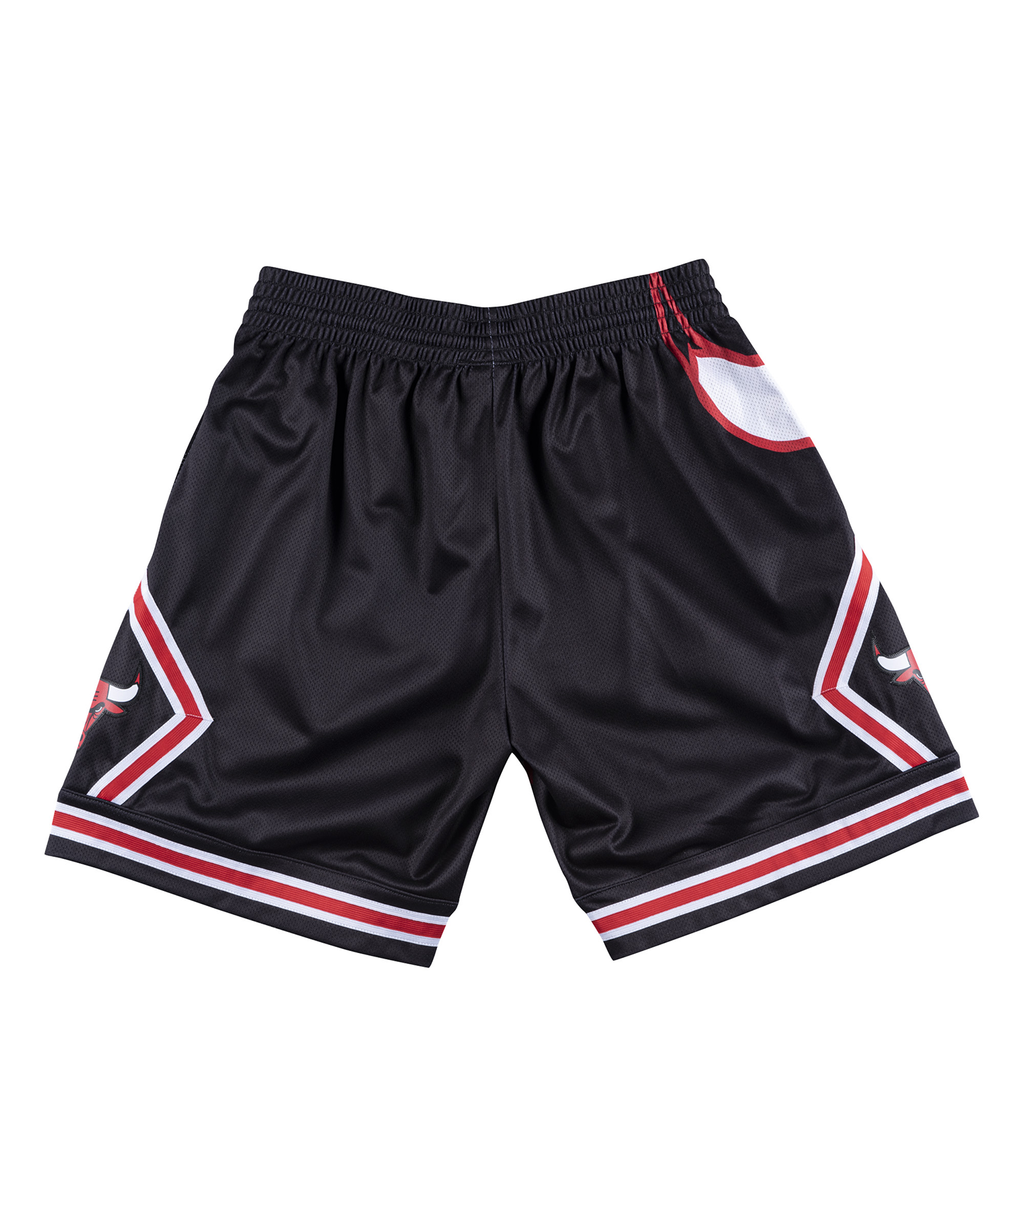 Chicago Bulls Big Face Shorts 1997